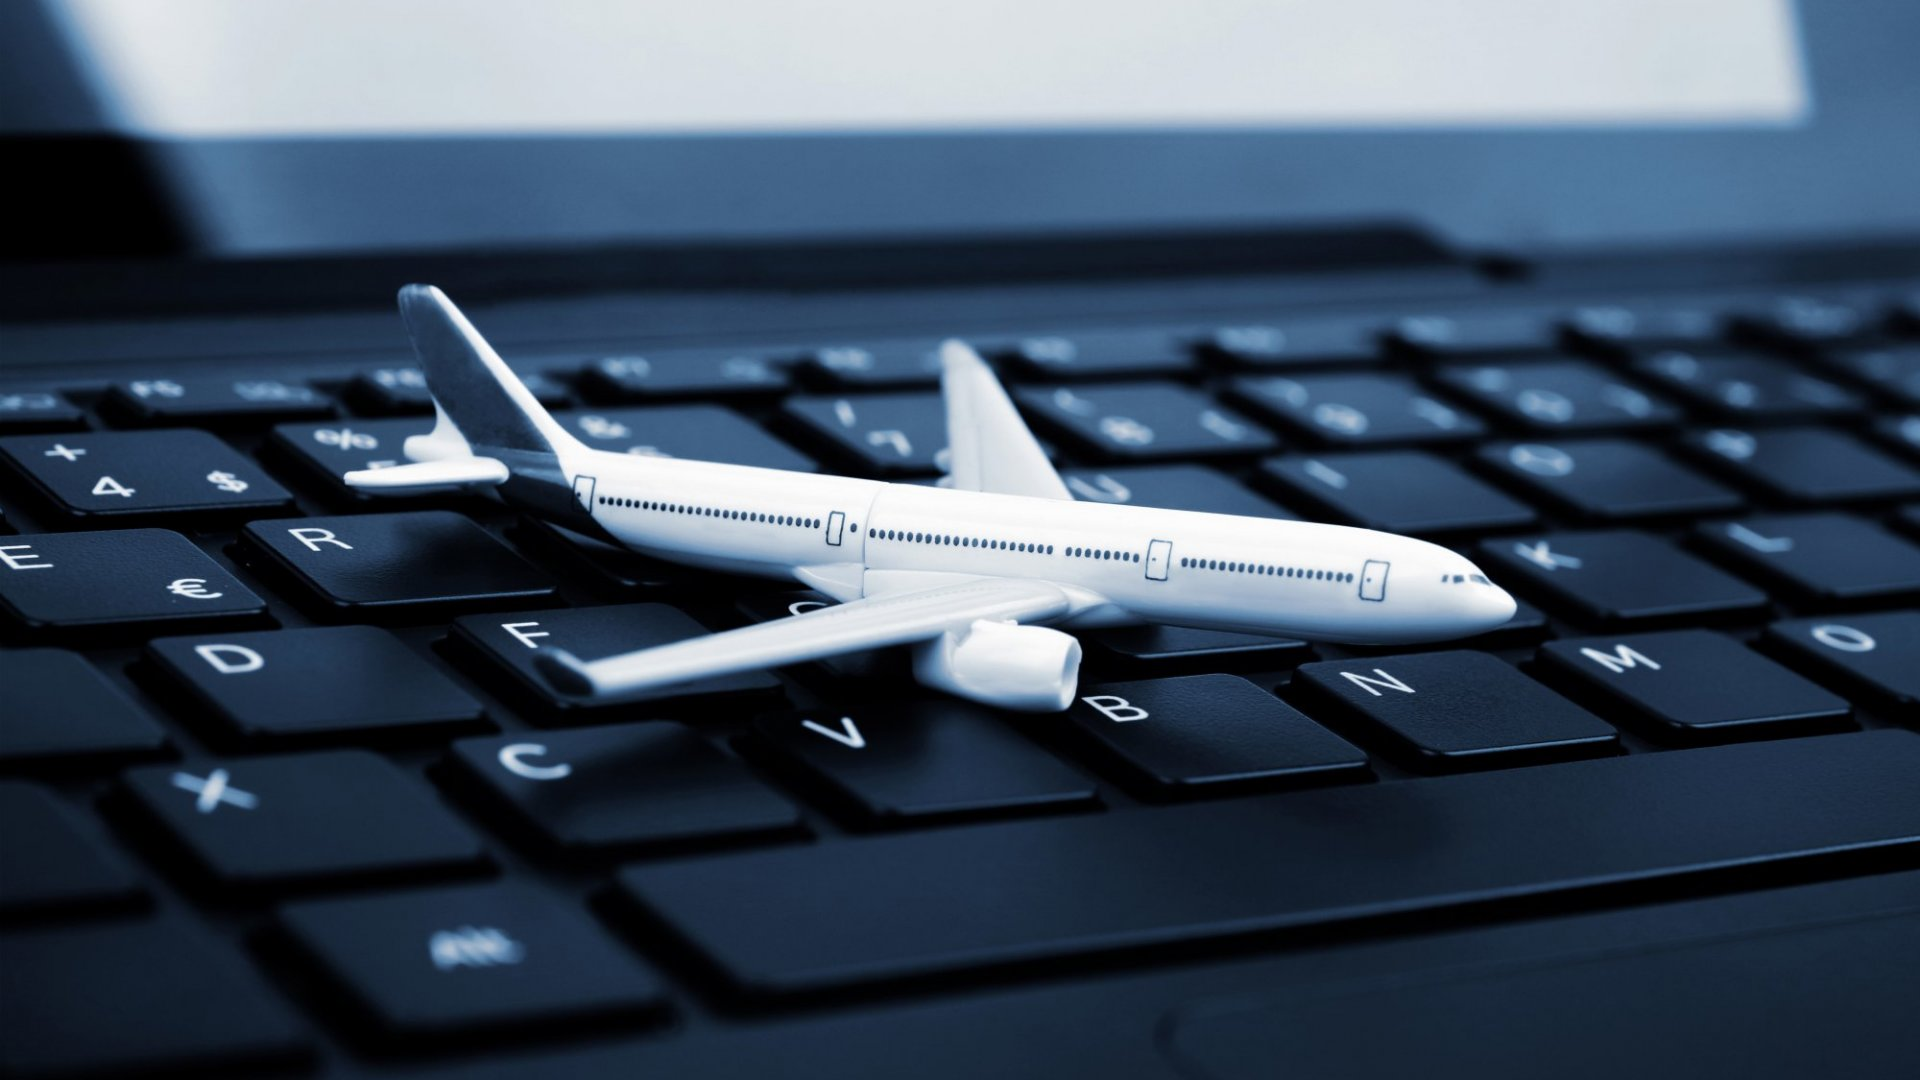 The airlines want to control your keyboard.